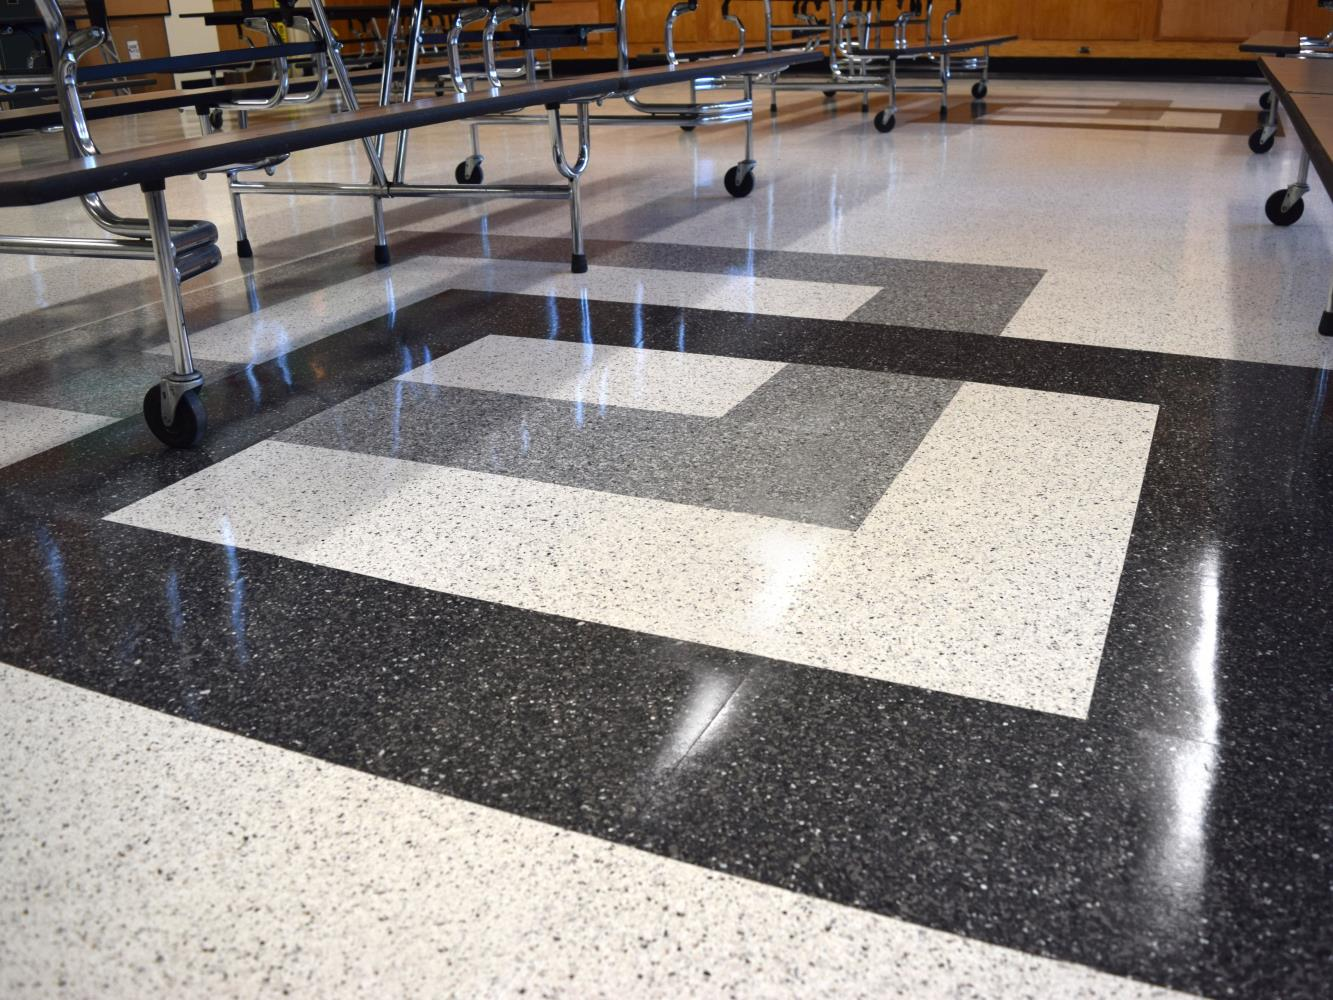 New Hyde Park Cafeteria Pic 2